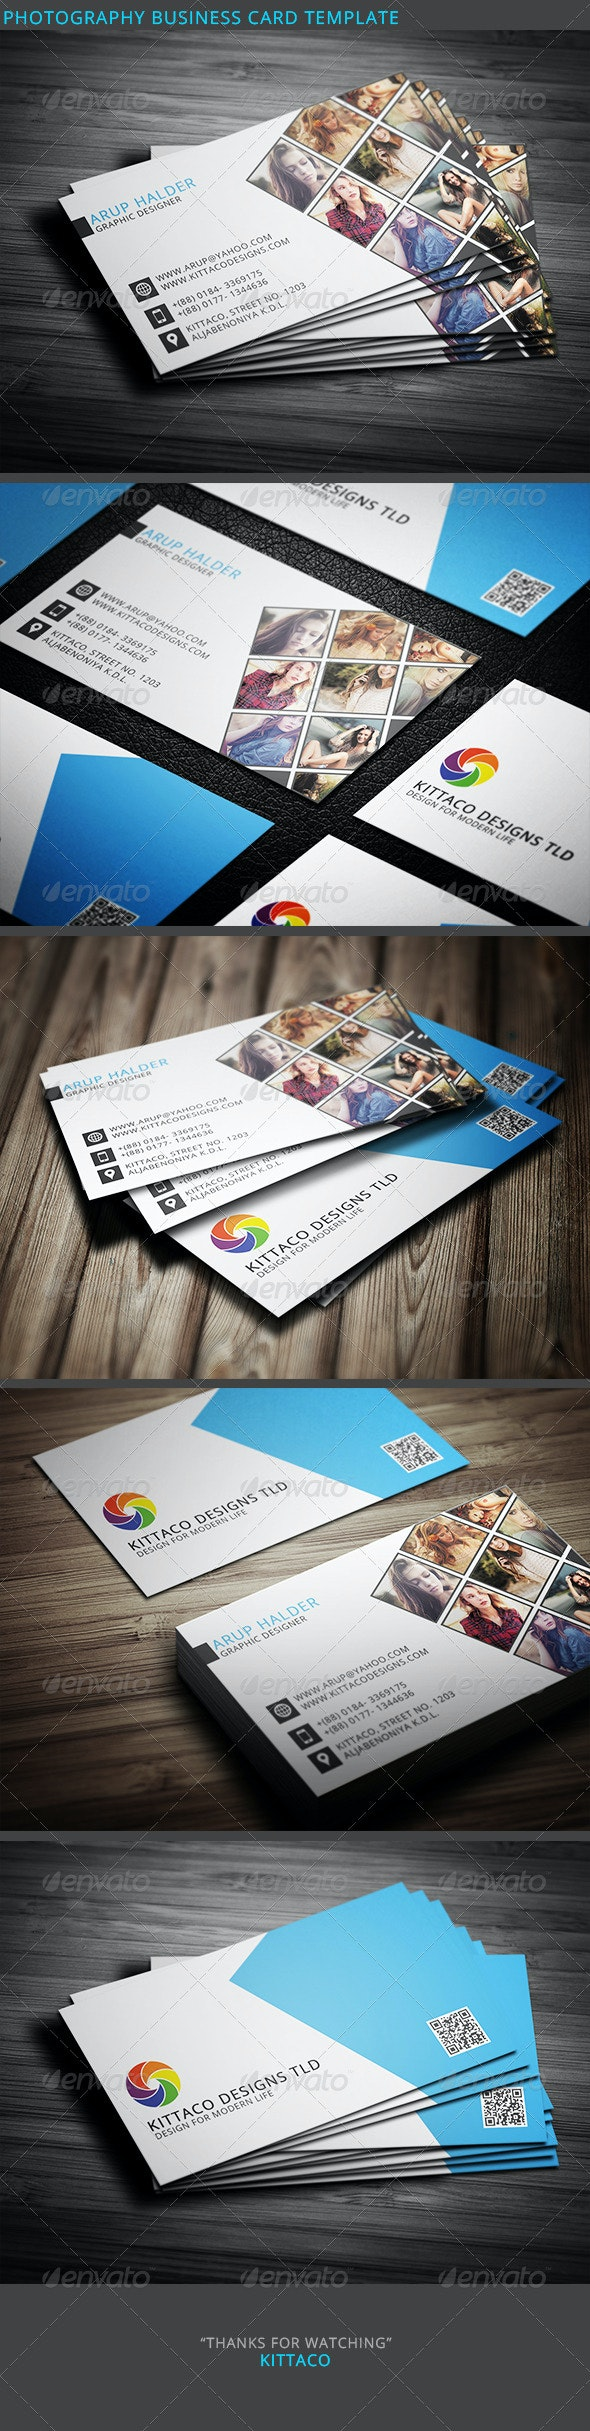 Photography Business Card Template 2 - Industry Specific Business Cards